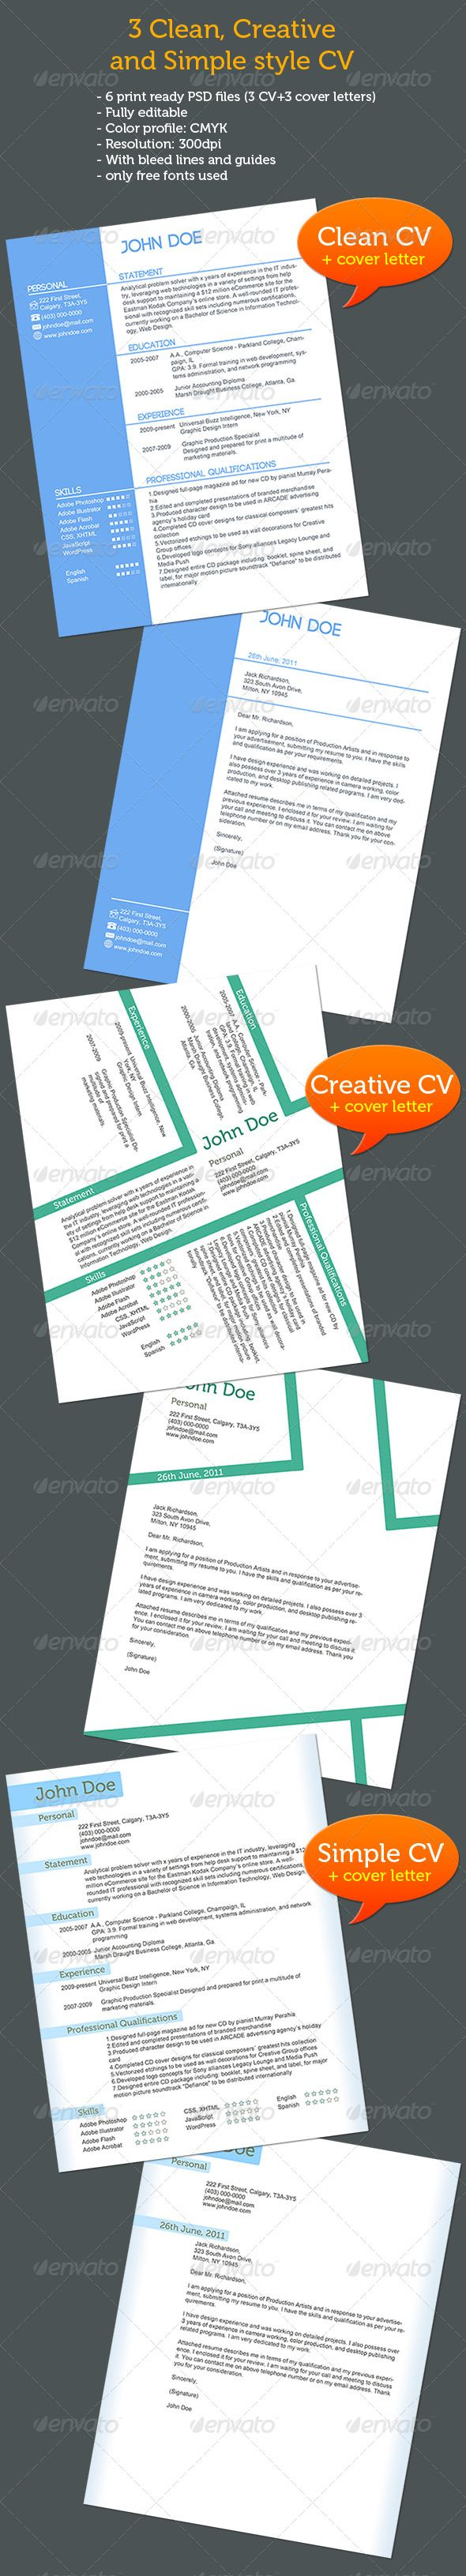 Wonderful 1 Year Experience Resume Format For Dot Net Small 1.5 Inch Hexagon Template Regular 100 Template 1099 Excel Template Youthful 1099 Misc Form Template Fresh12 Inch Ruler Template Print Templates: A Collection Of Ideas To Try About Design | Fonts ..